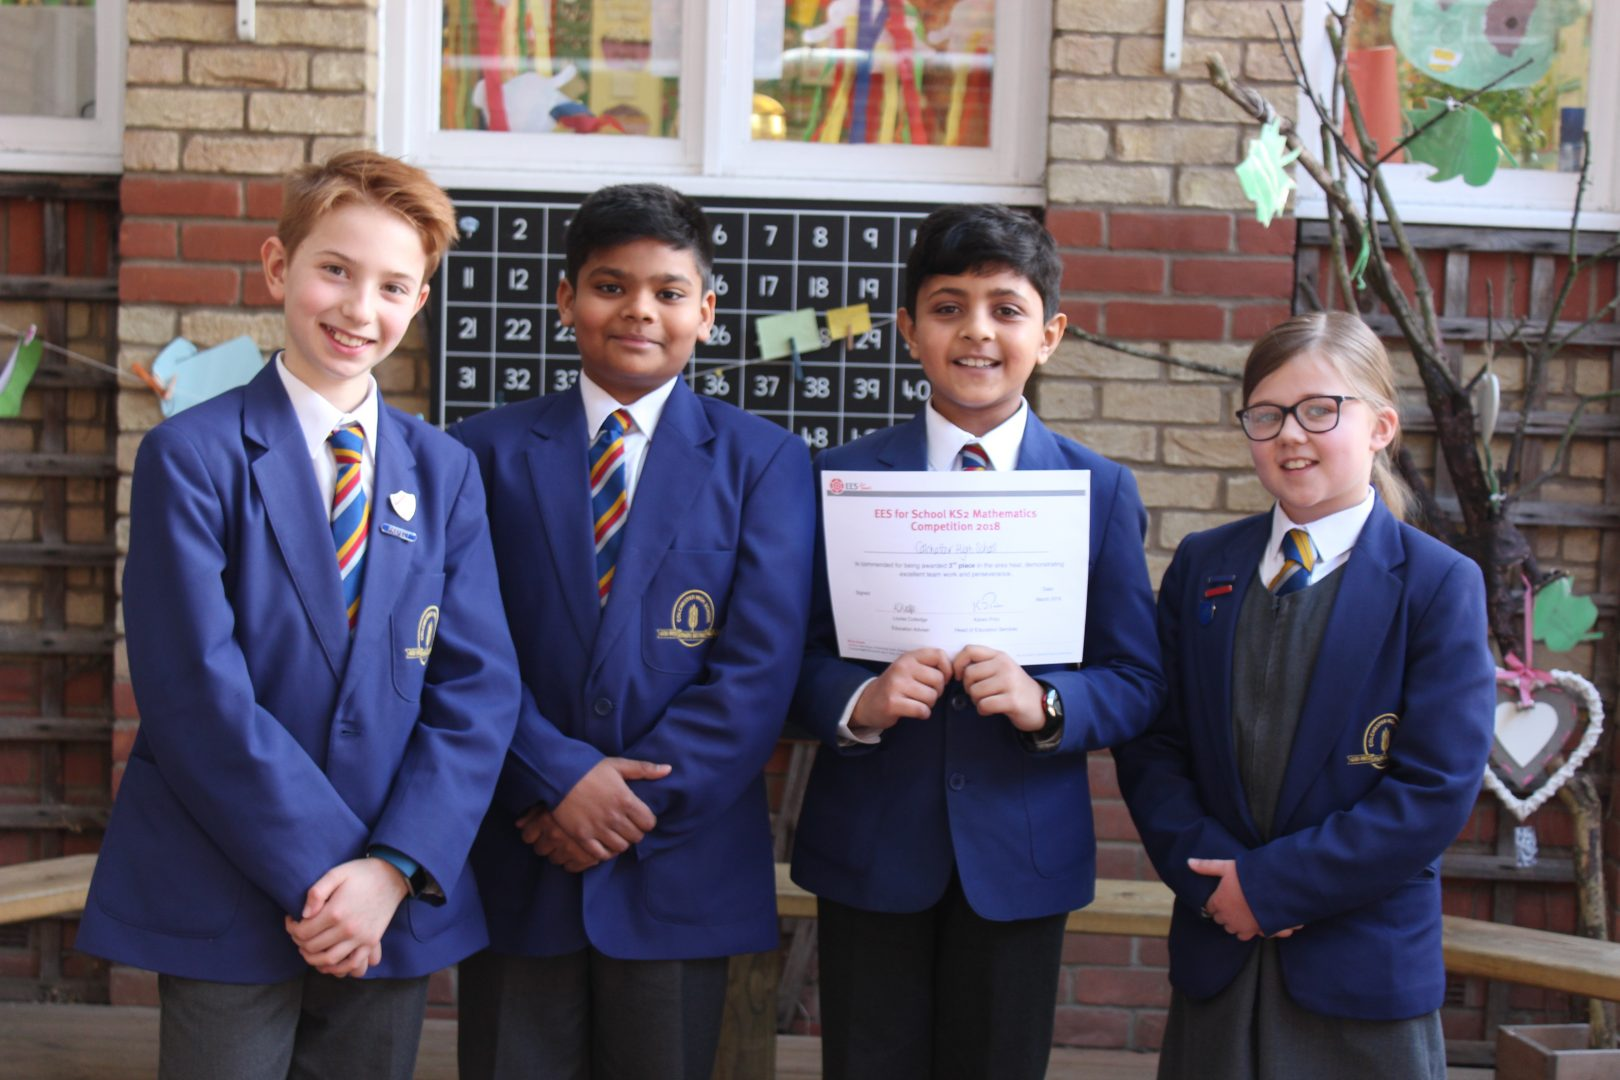 And A Top Scoring Third Place at the EES KS2 Mathematics Competition